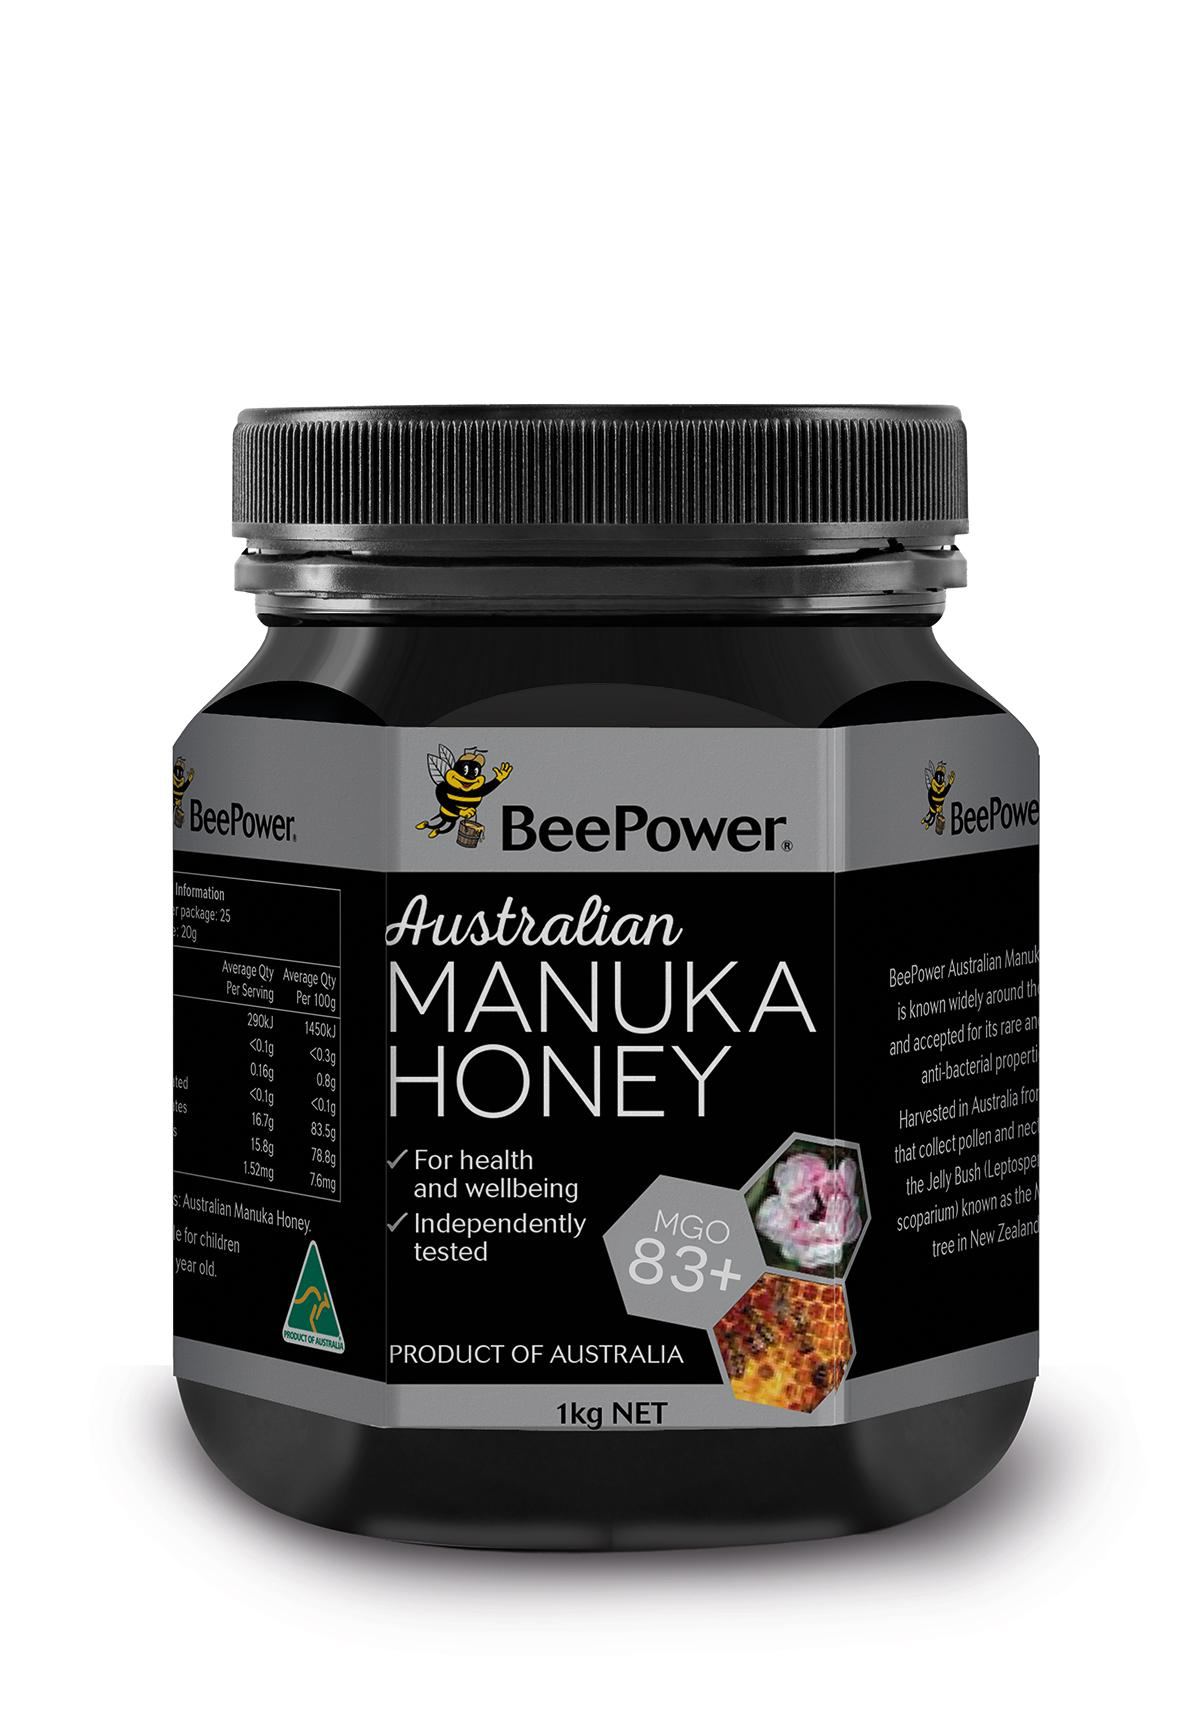 Beepower Australia Organic Manuka Honey Mgo 83+ 1kg By The Honey Store.